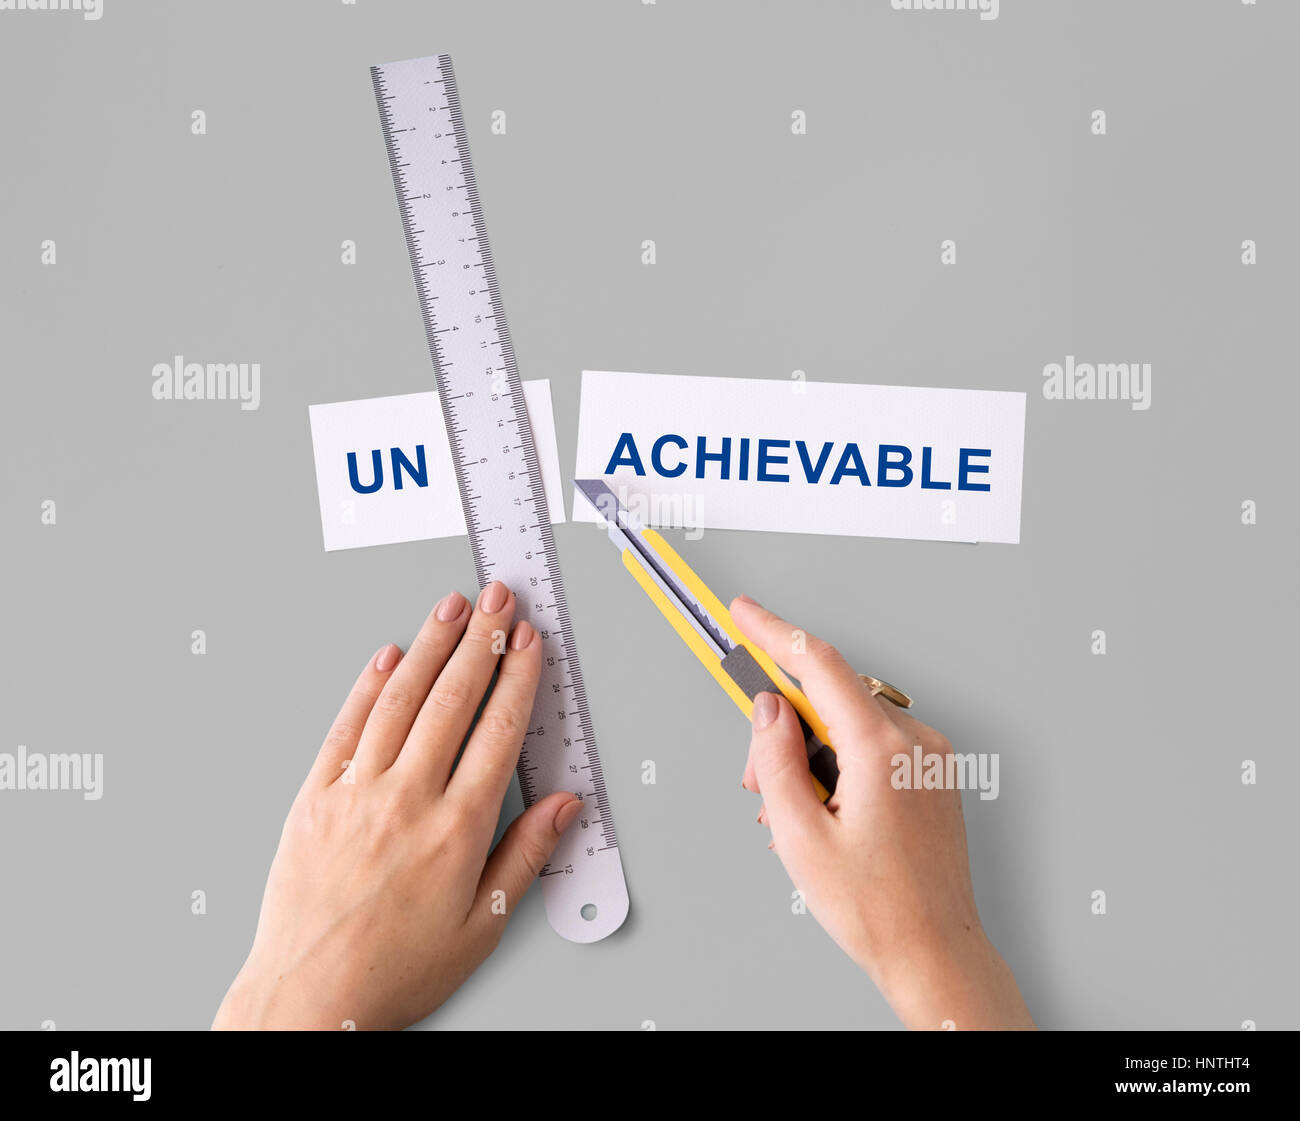 Unachievable Unsuccessful Hands Cut Word Split Concept - Stock Image